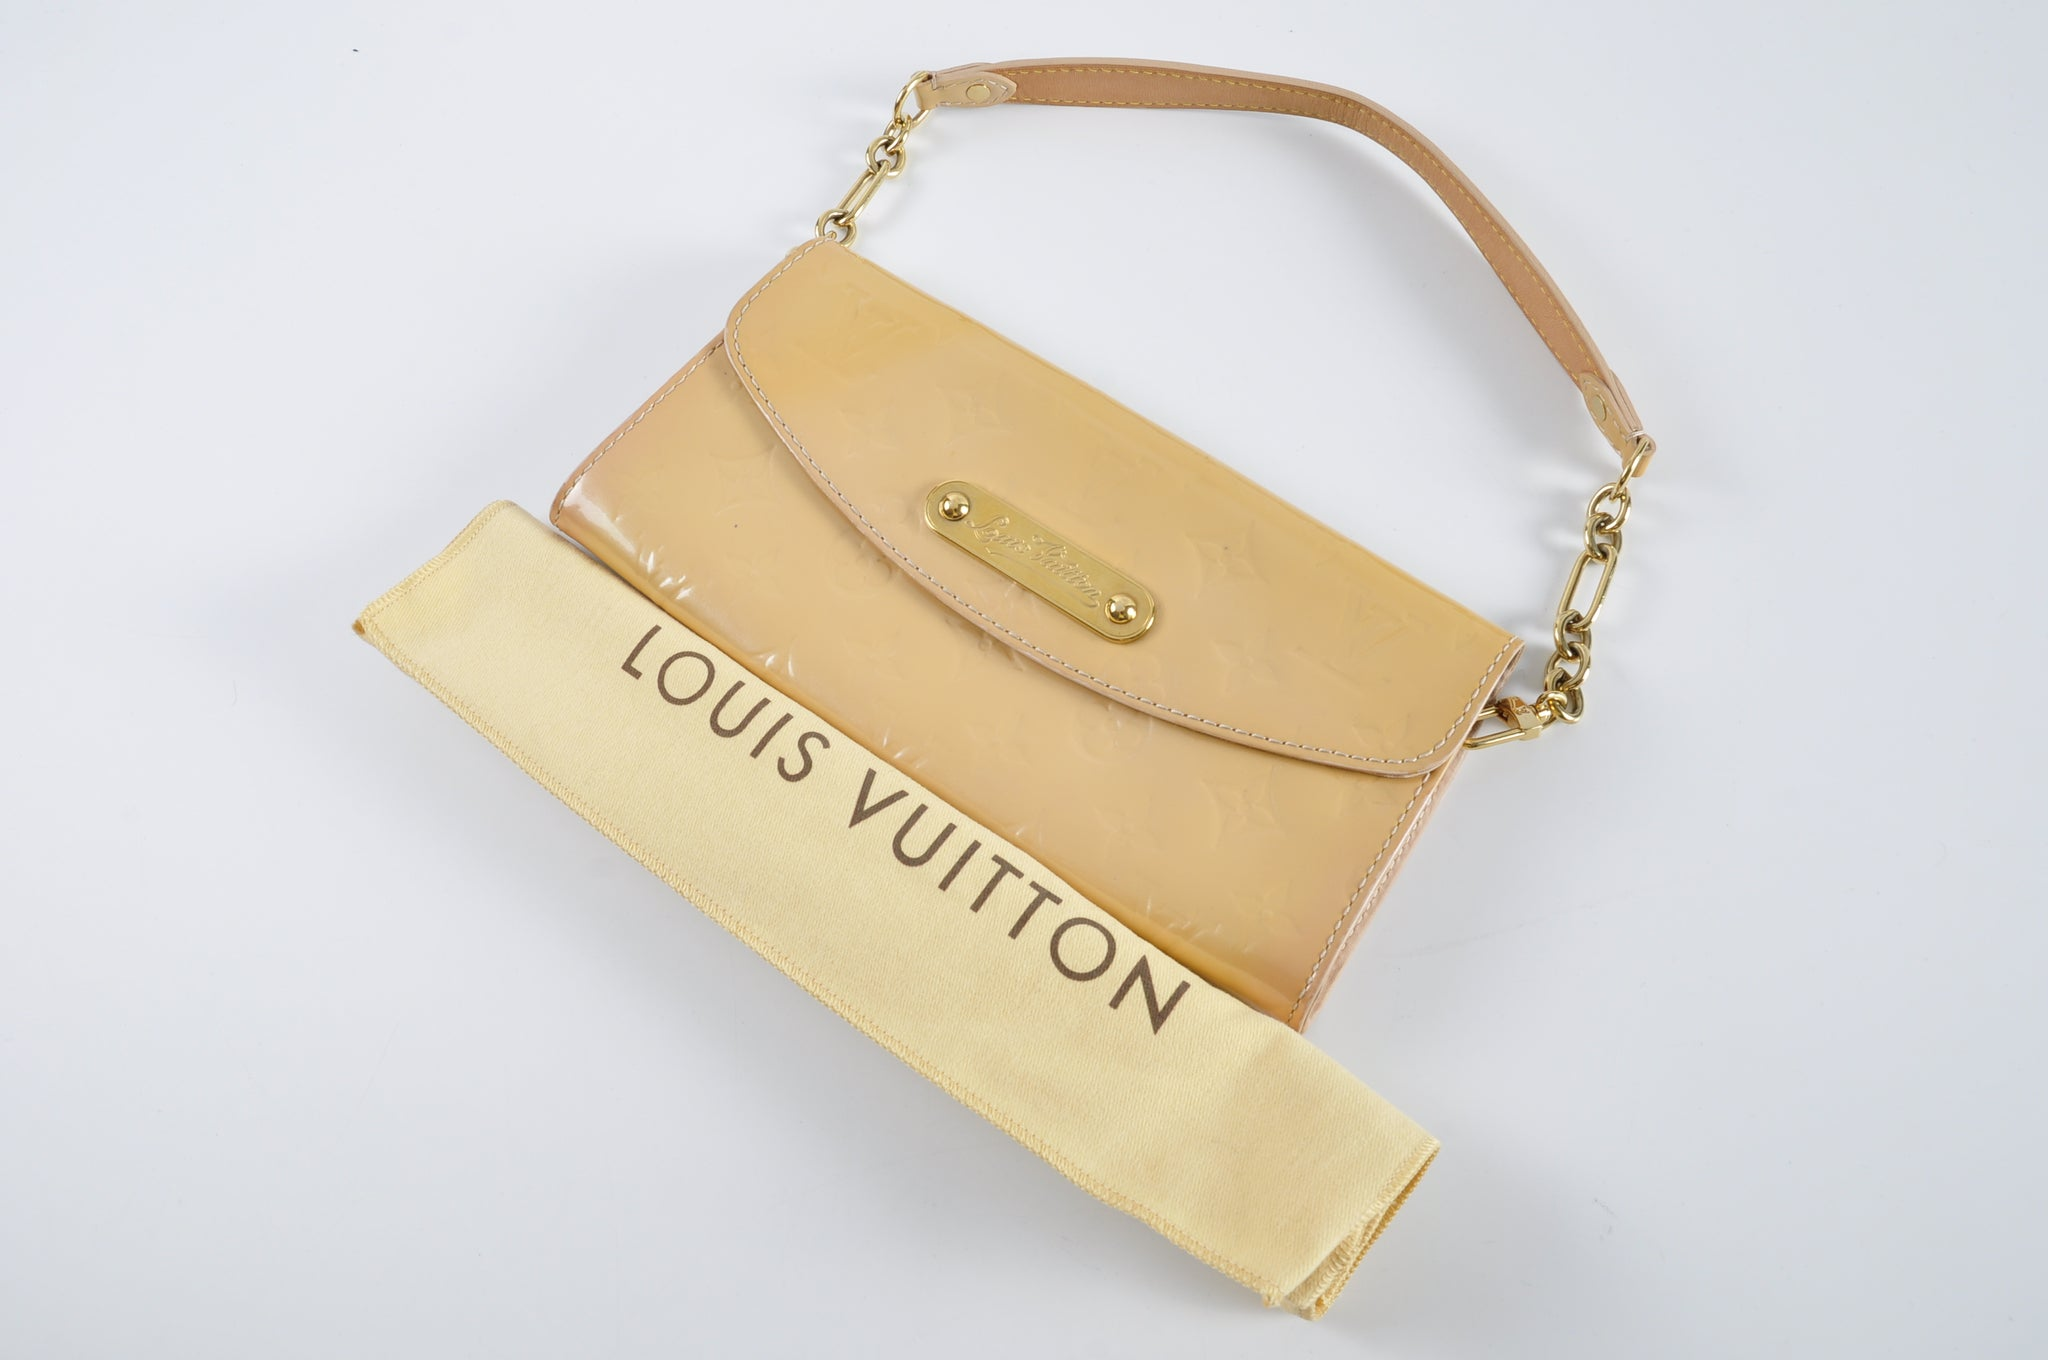 Louis Vuitton M91626 Sunset Boulevard Vernis Rose Florenti TH4019